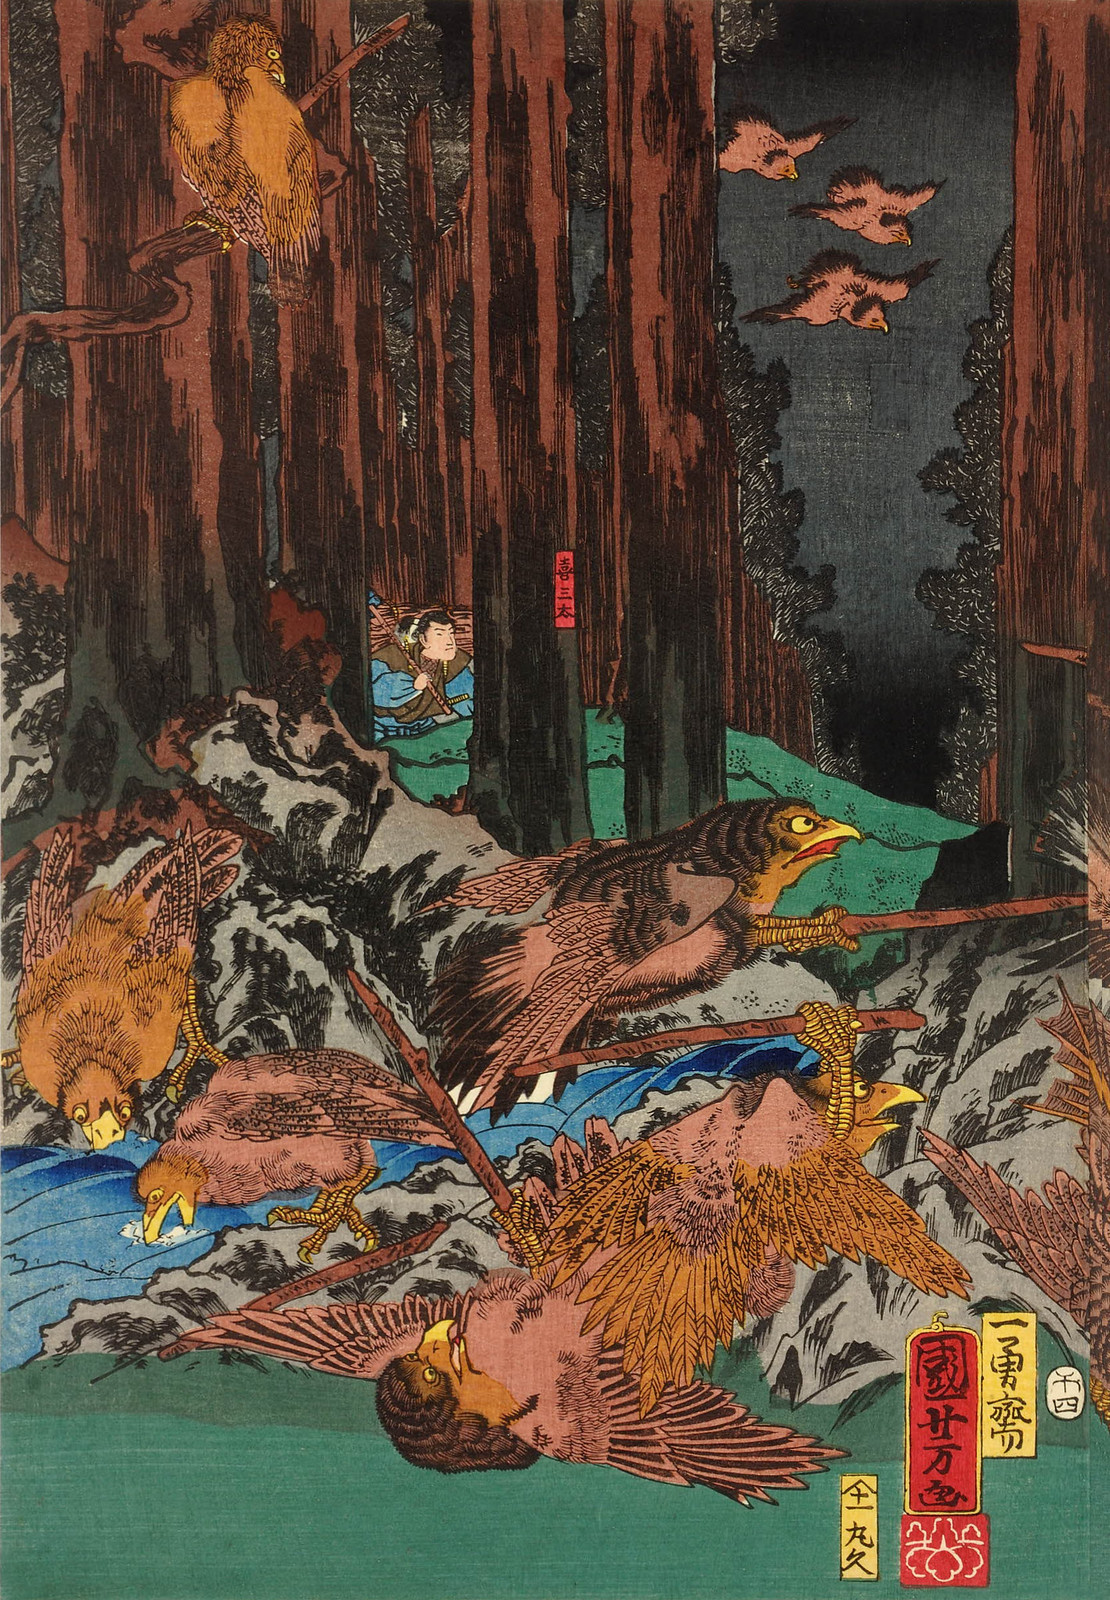 Utagawa Kuniyoshi - Ushiwaka Kurama shugyo zu, 1858 (right panel)